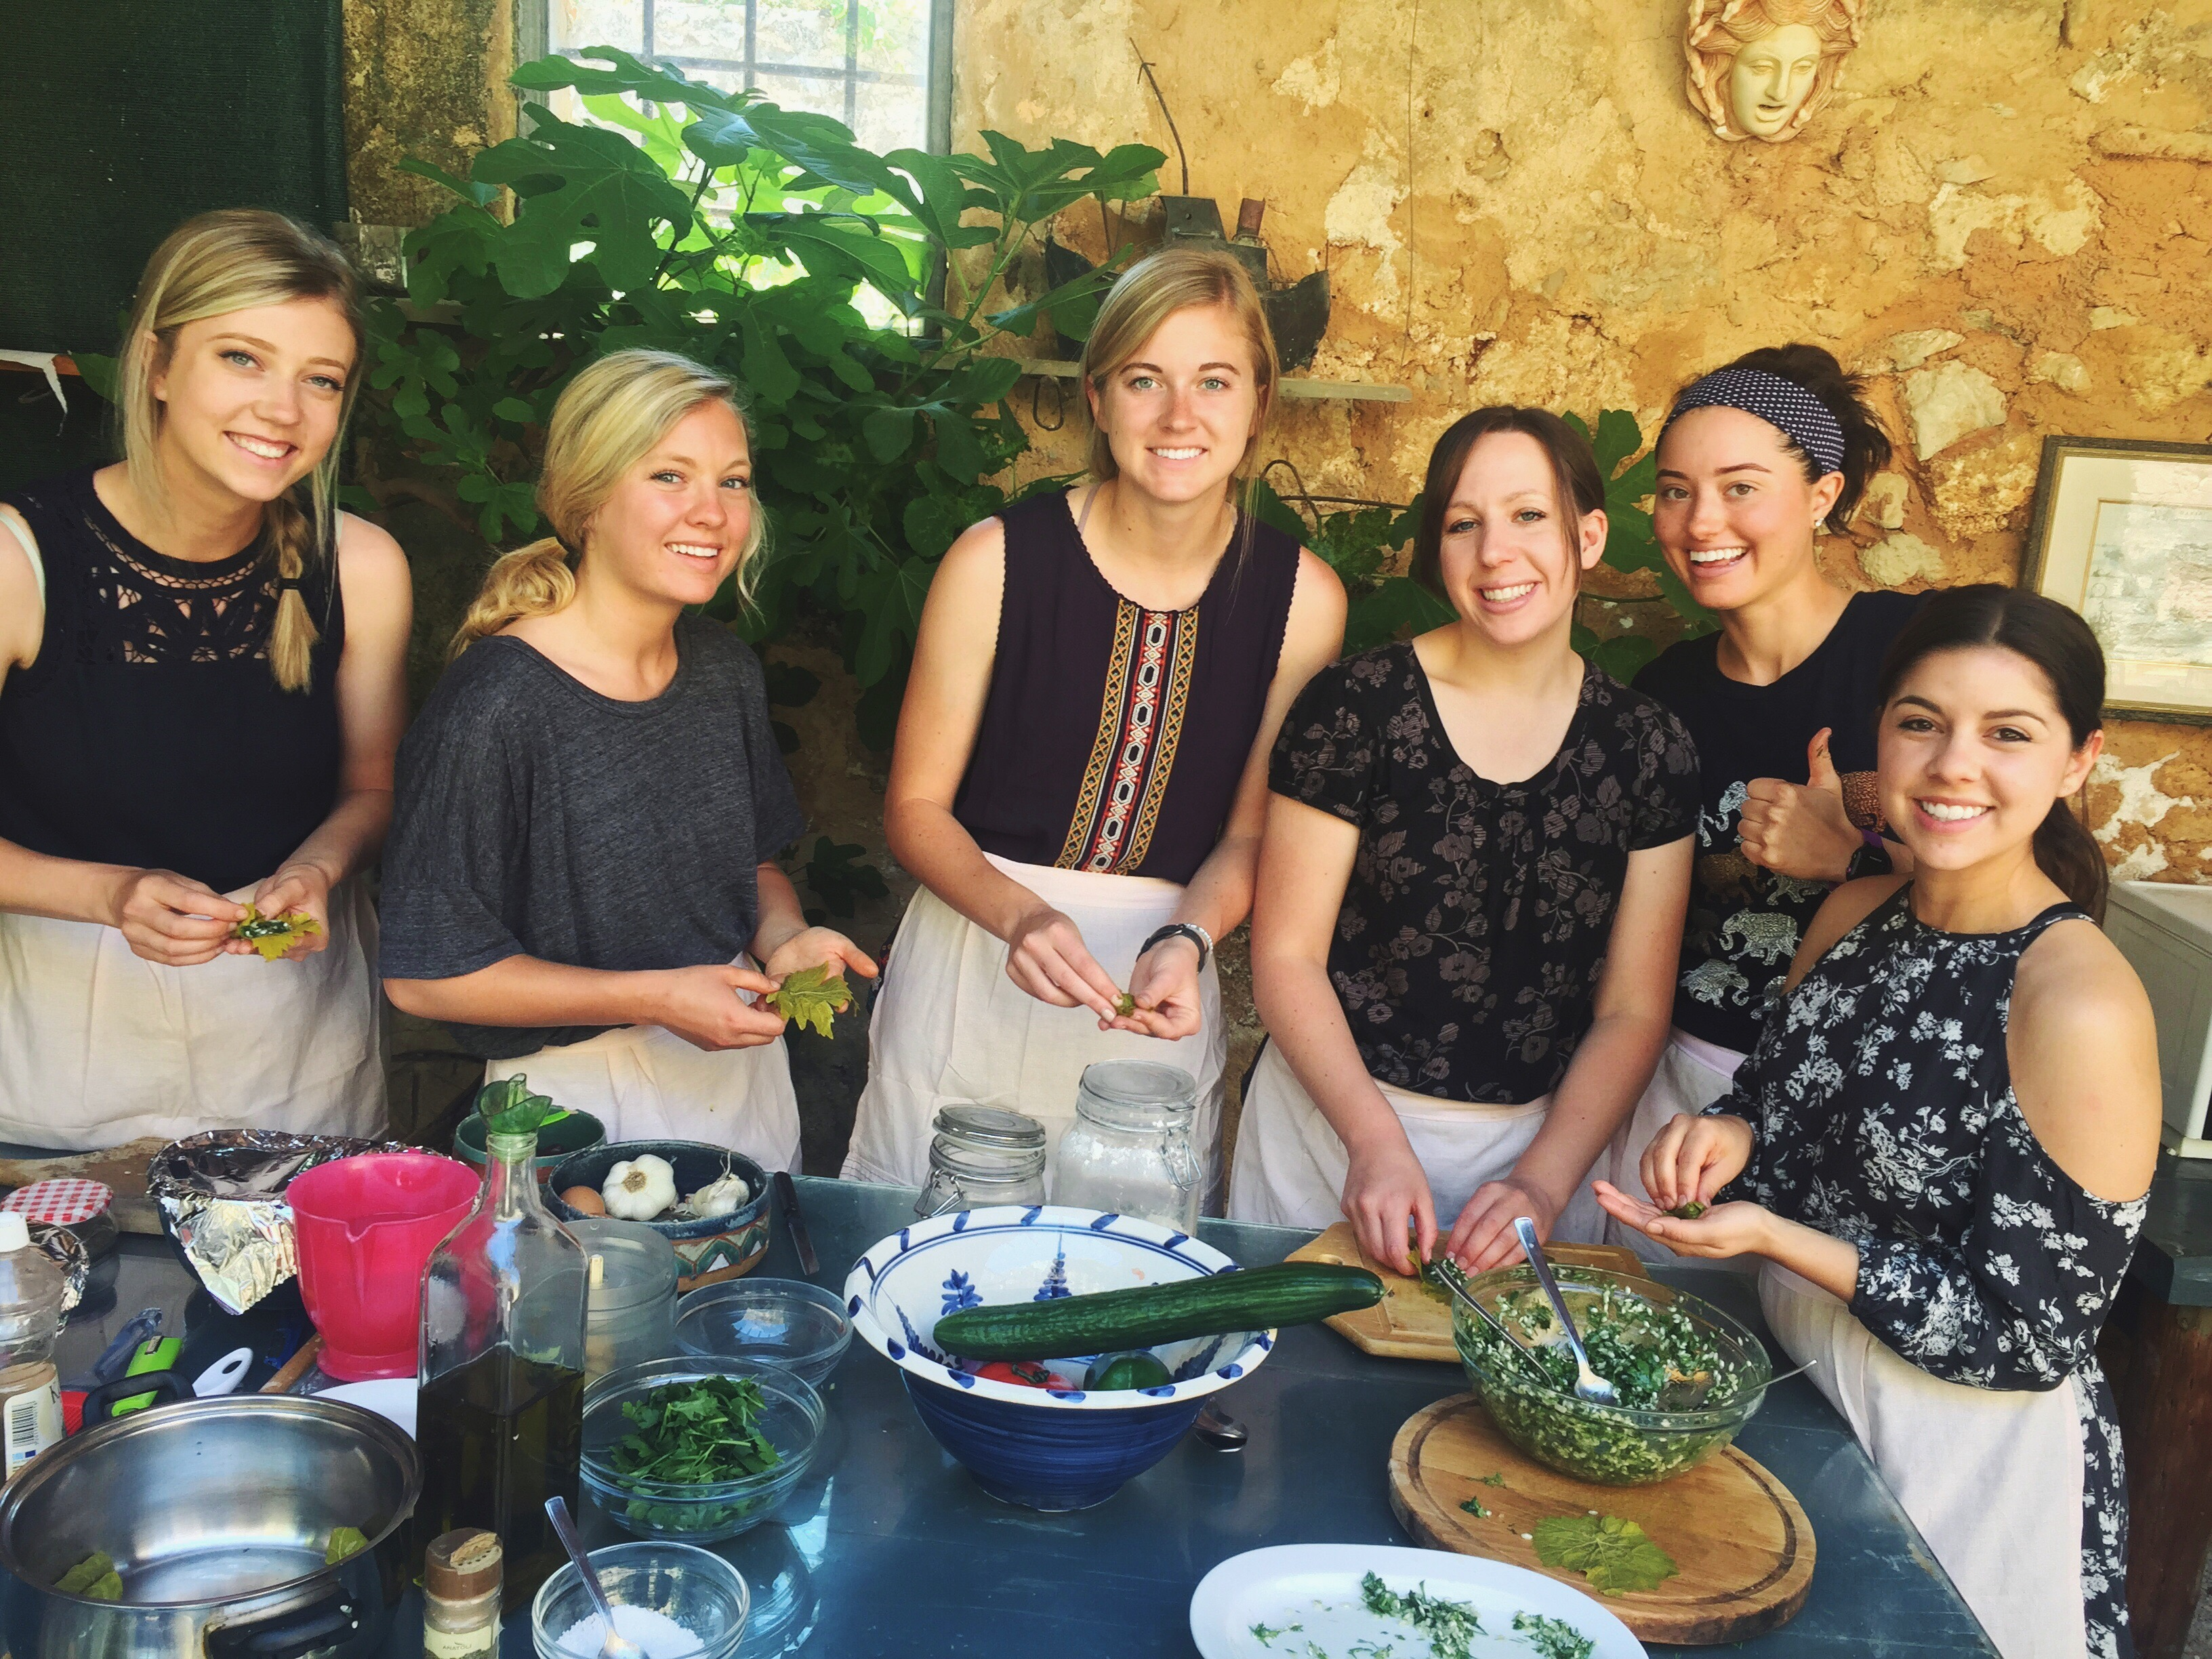 USU NUTRITION STUDENTS VISIT GREECE, LEARN HEALTHY LIFESTYLE PRACTICES